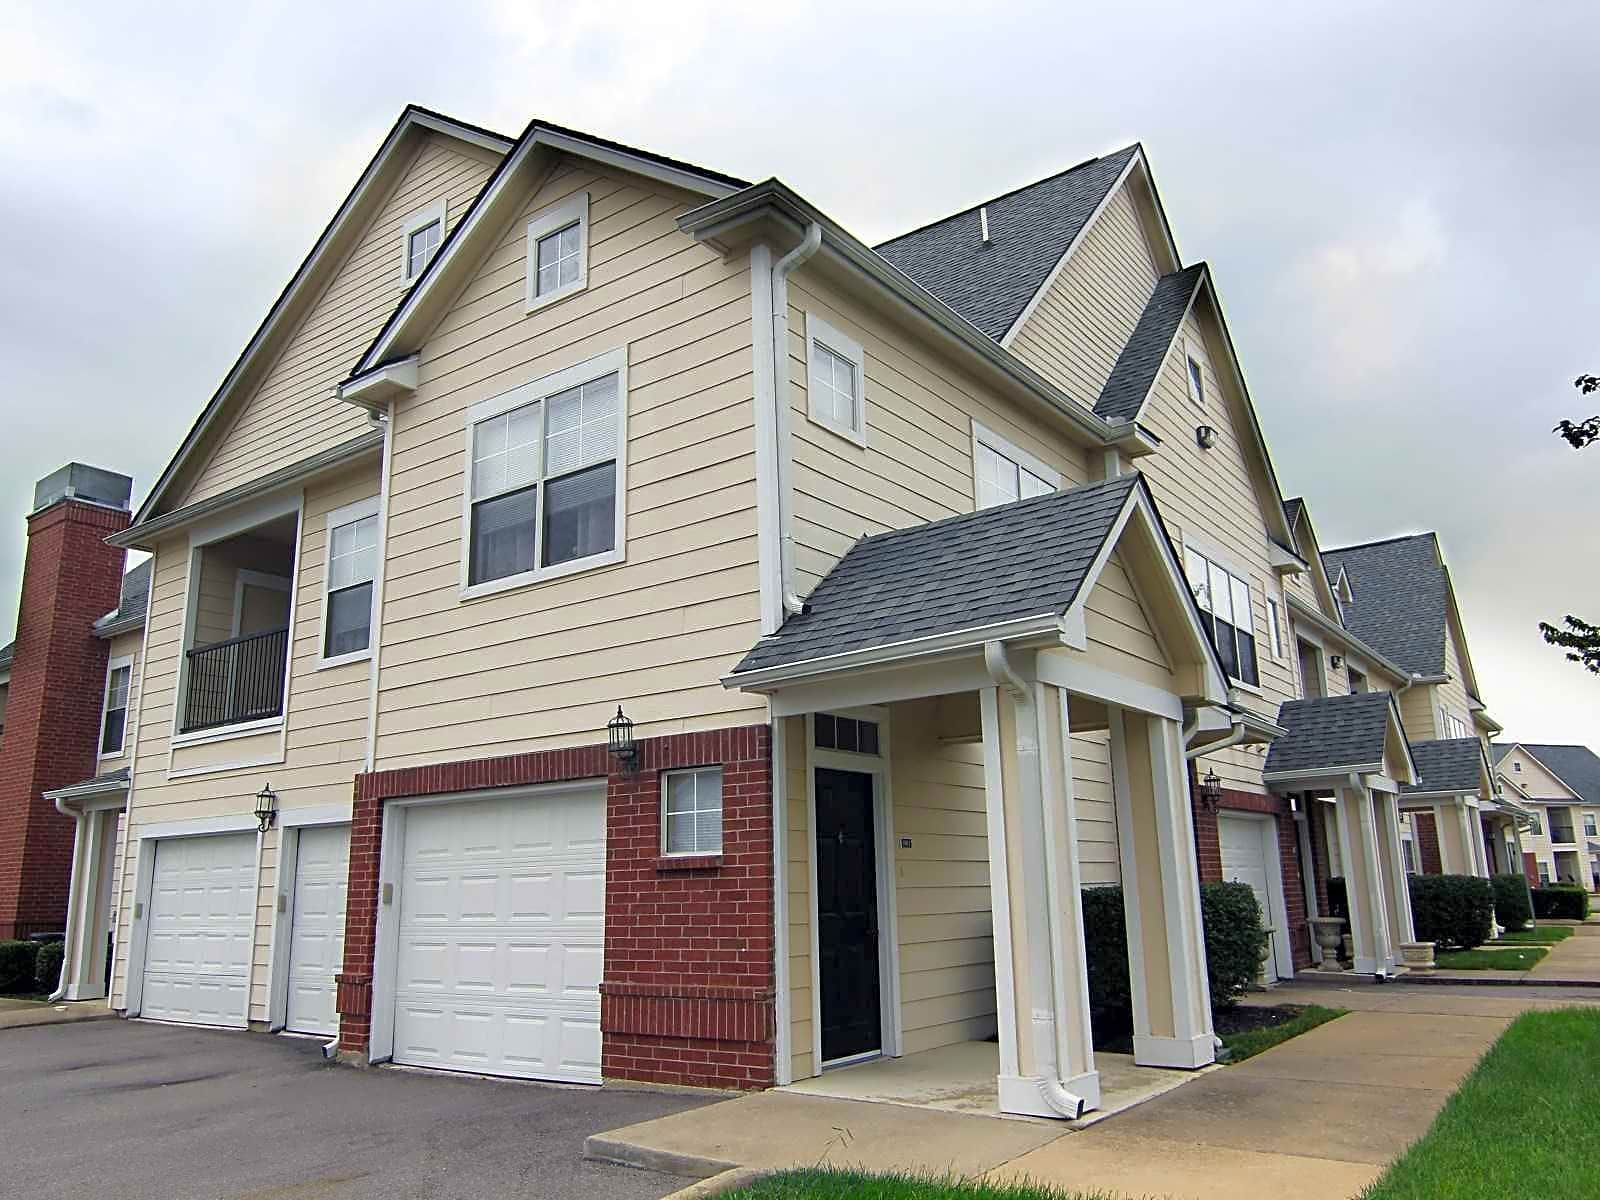 Photo: Murfreesboro Apartment for Rent - $773.00 / month; 1 Bd & 1 Ba